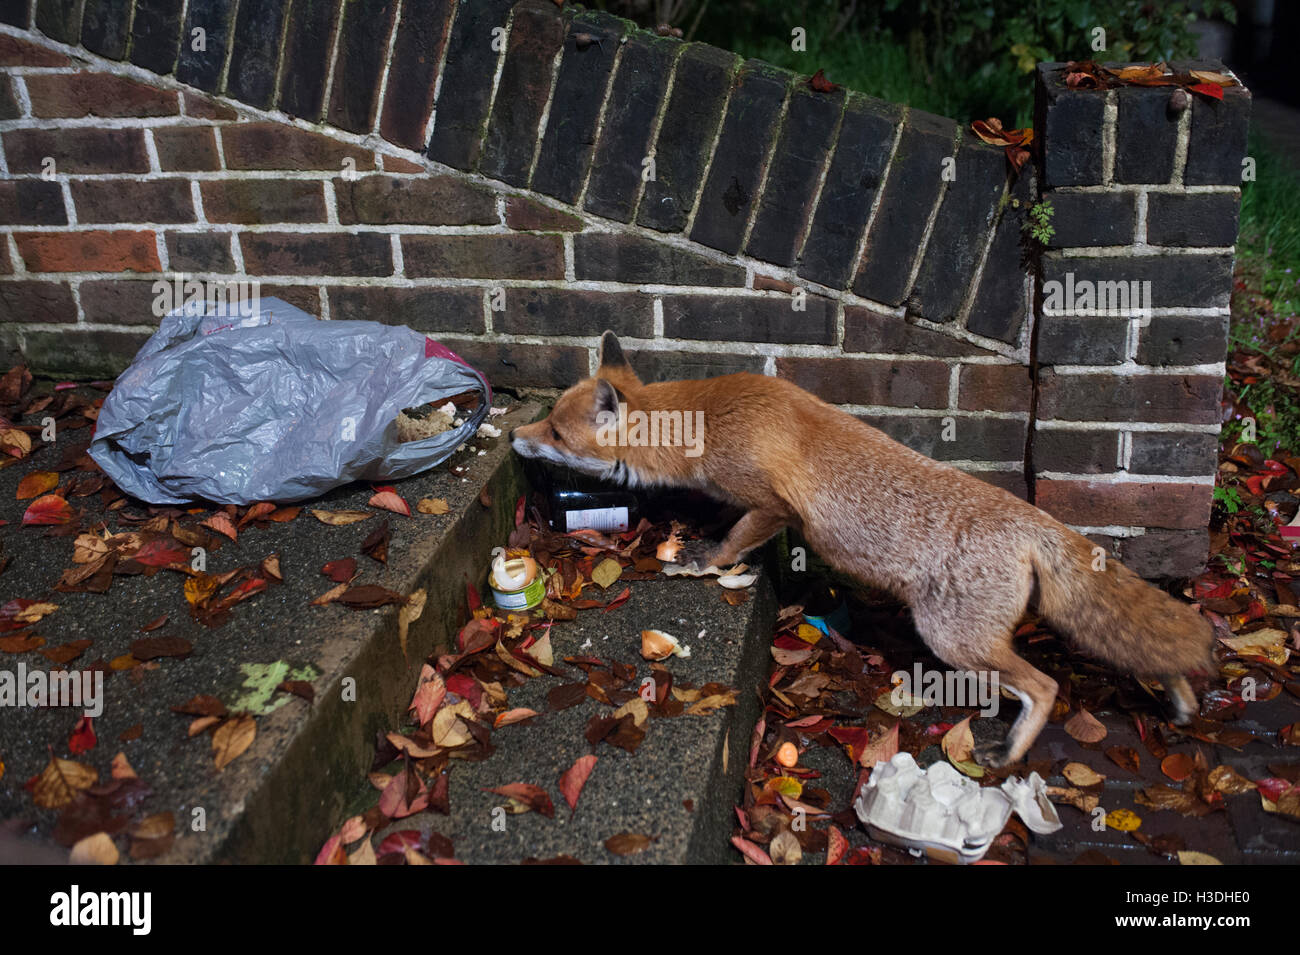 urban Red Fox, (Vulpes vulpes), searches at night through rubbish bag for food scraps in a front garden in London, - Stock Image